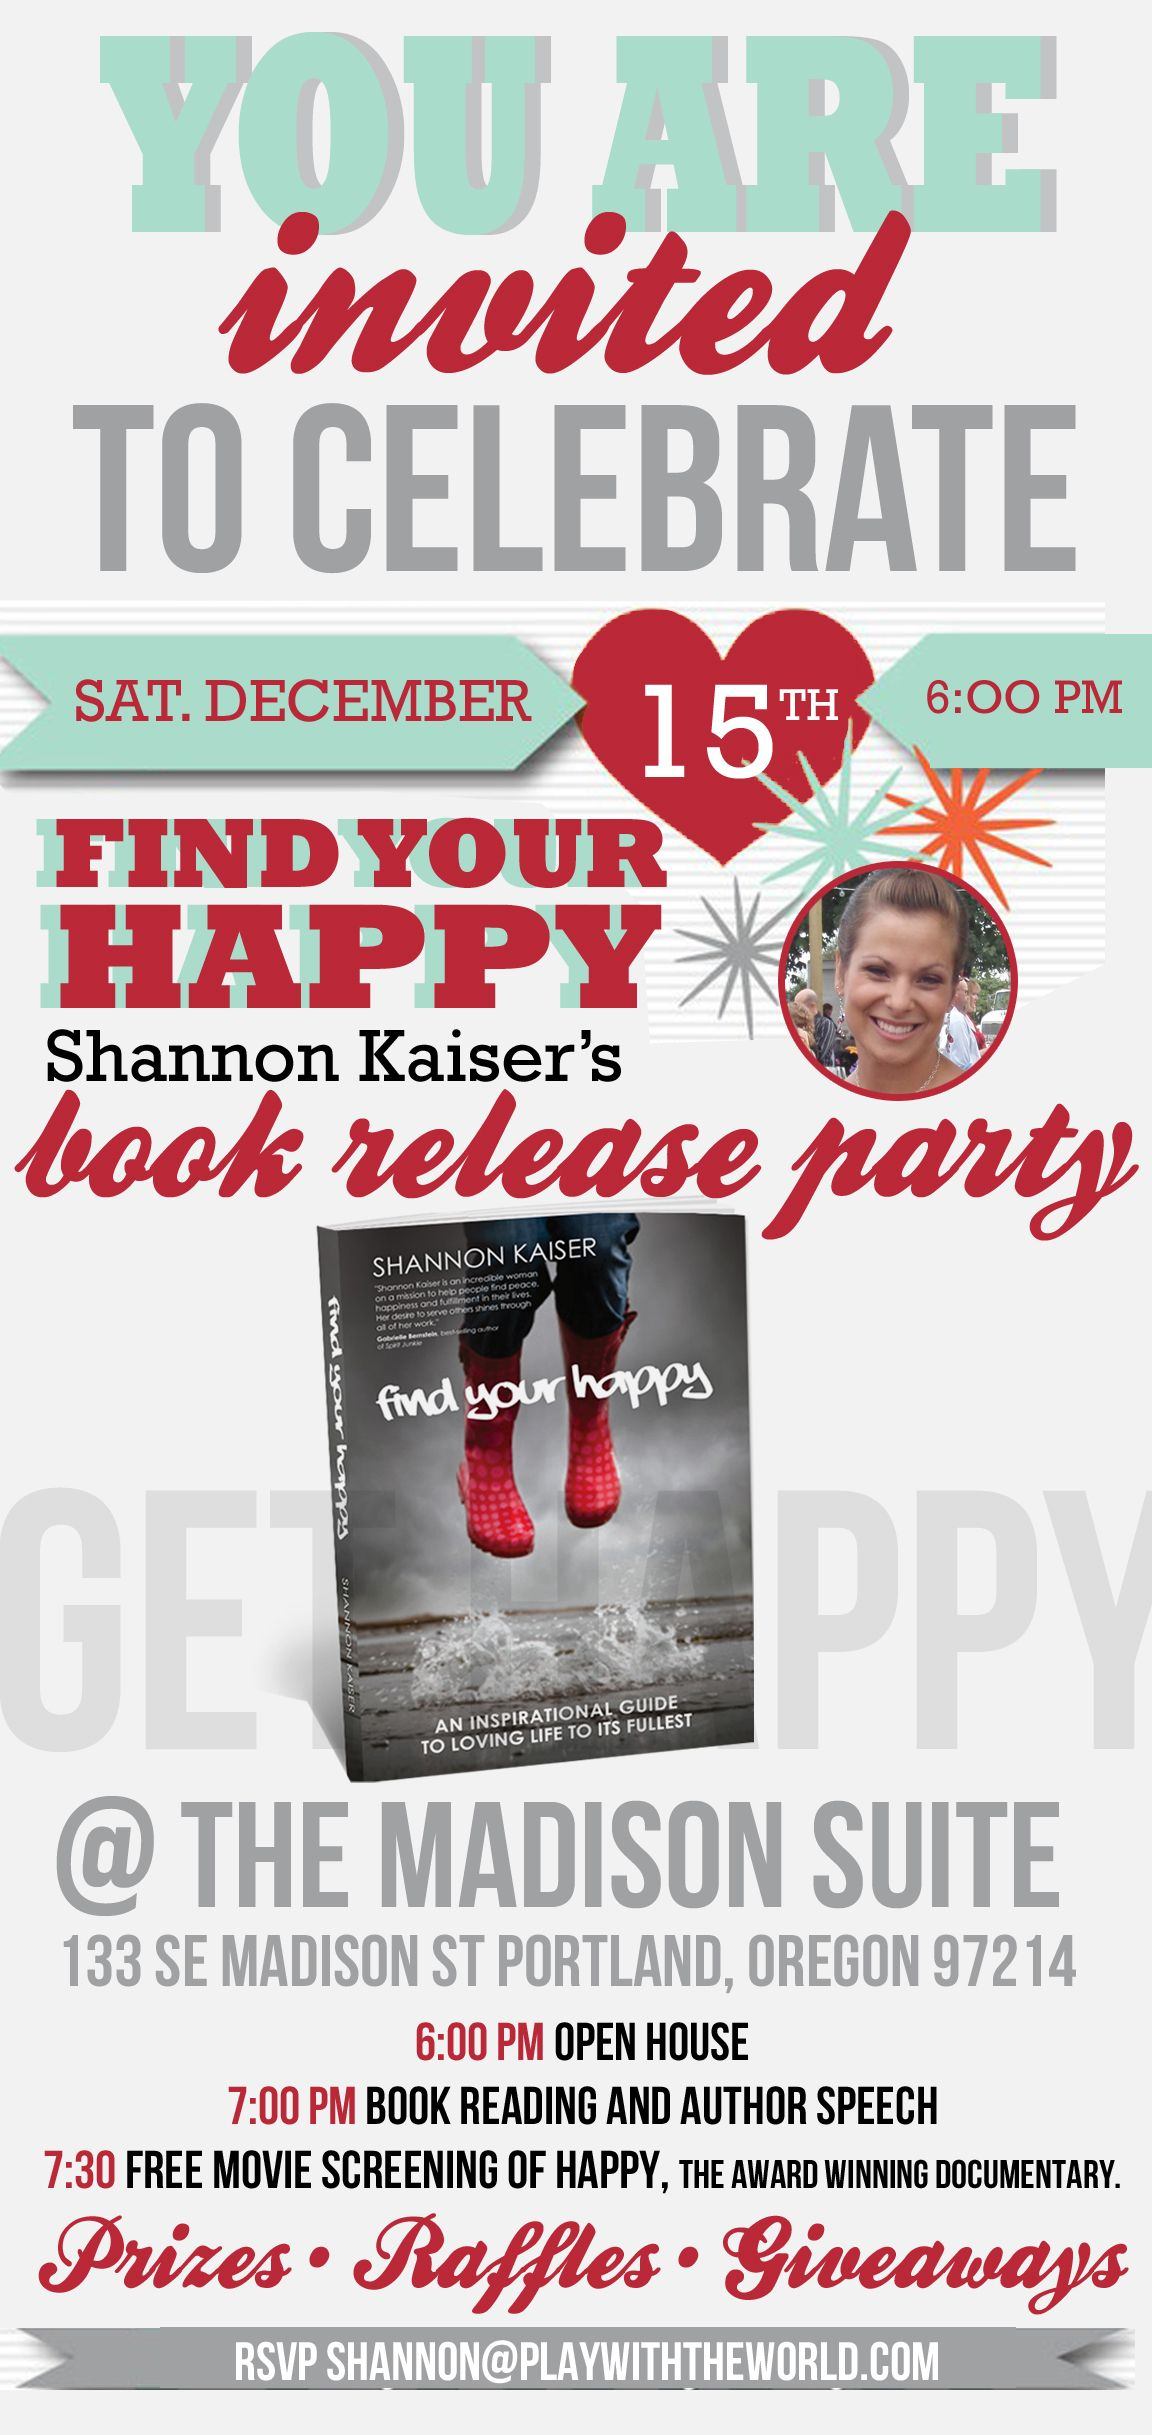 Book Release Party Invitation For Find Your Happy Visit